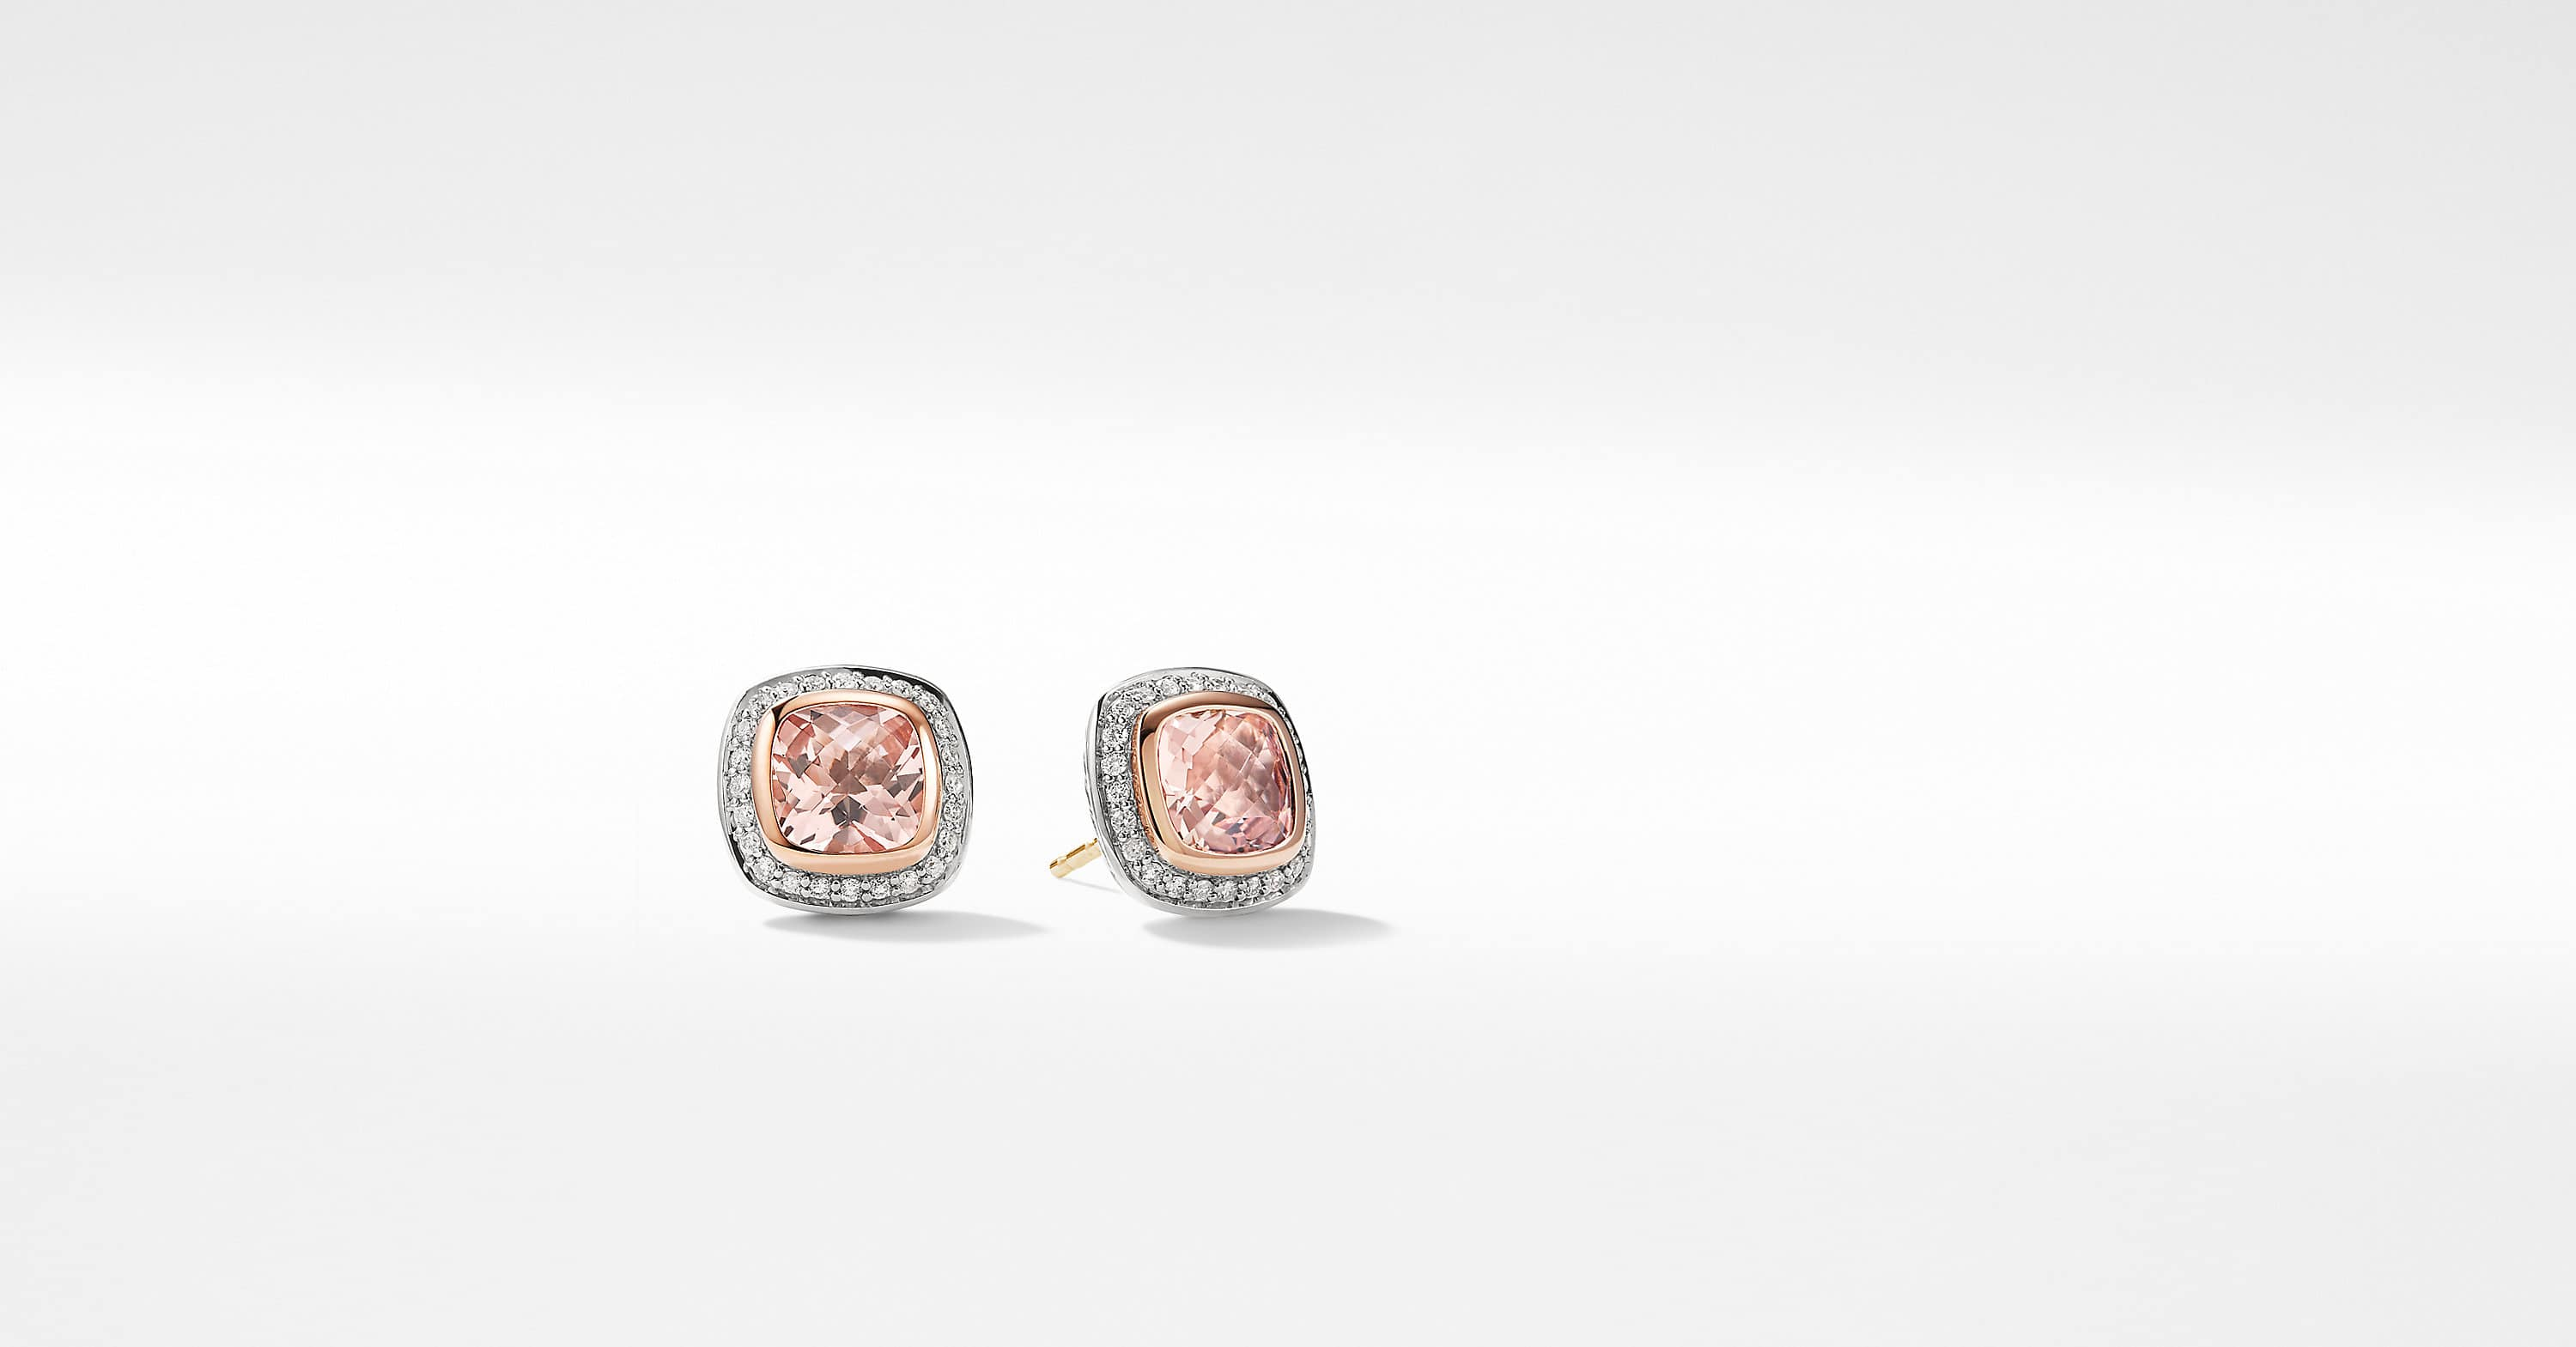 Boucles d'oreilles Albion en or rose 18 carats et diamants, 7 mm